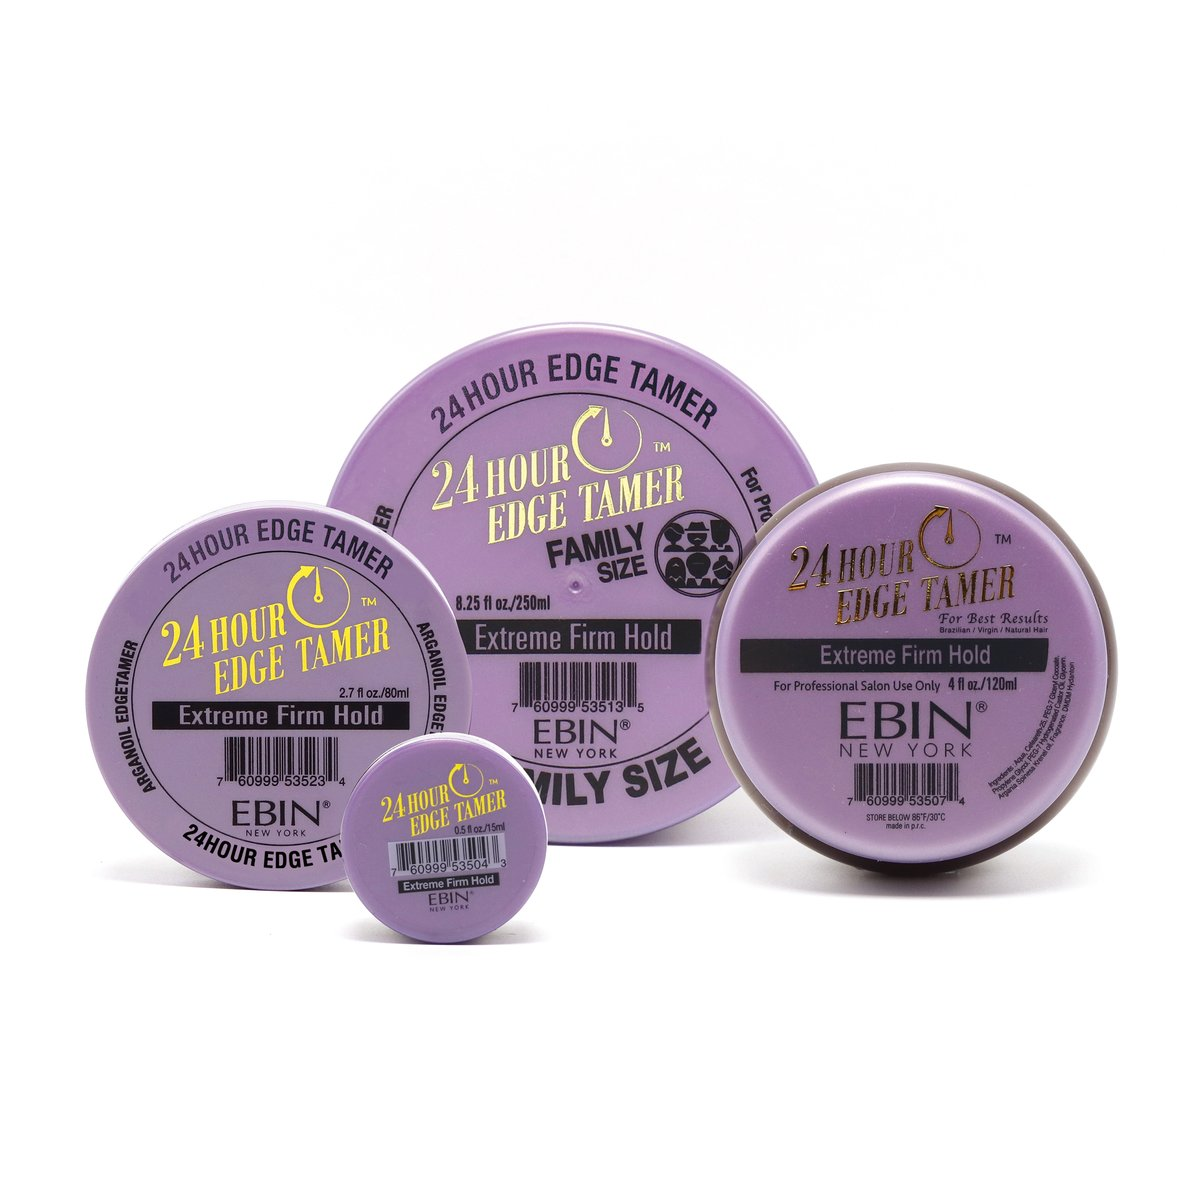 Ebin New York 24 Hour Edge Tamer - Extreme Firm Hold